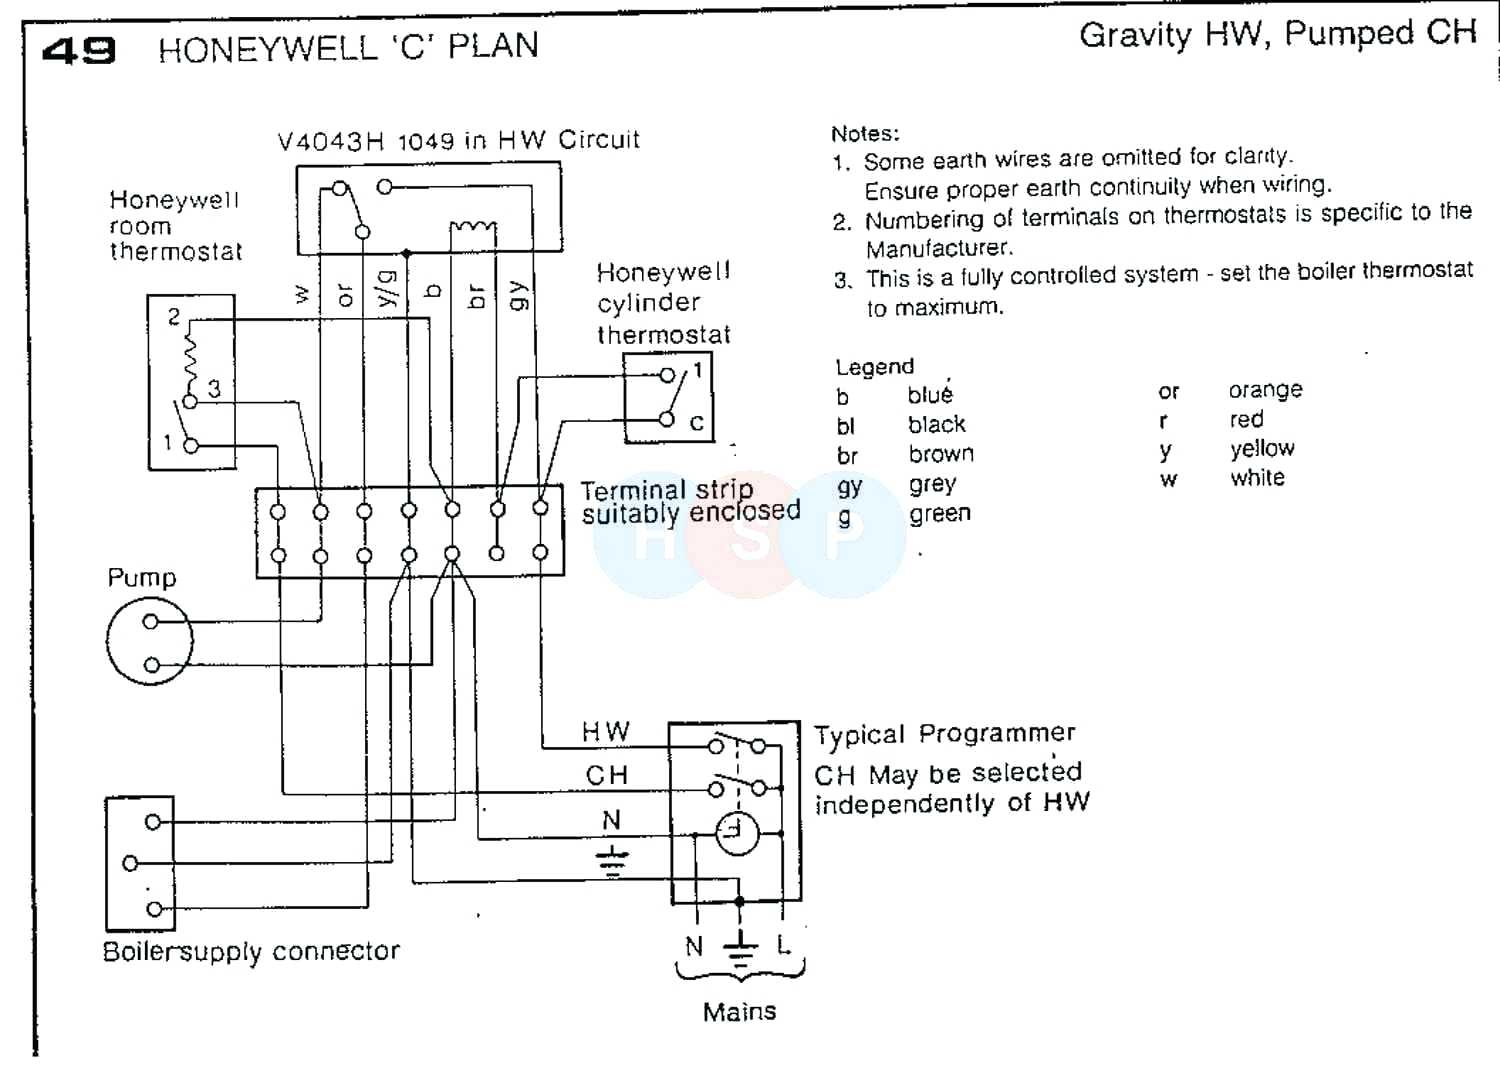 M640 Honeywell Actuator Wiring Diagrams Data Wiring Diagrams \u2022  Honeywell Ms7520 Actuator Wiring Diagram Honeywell Actuator Wiring Diagrams